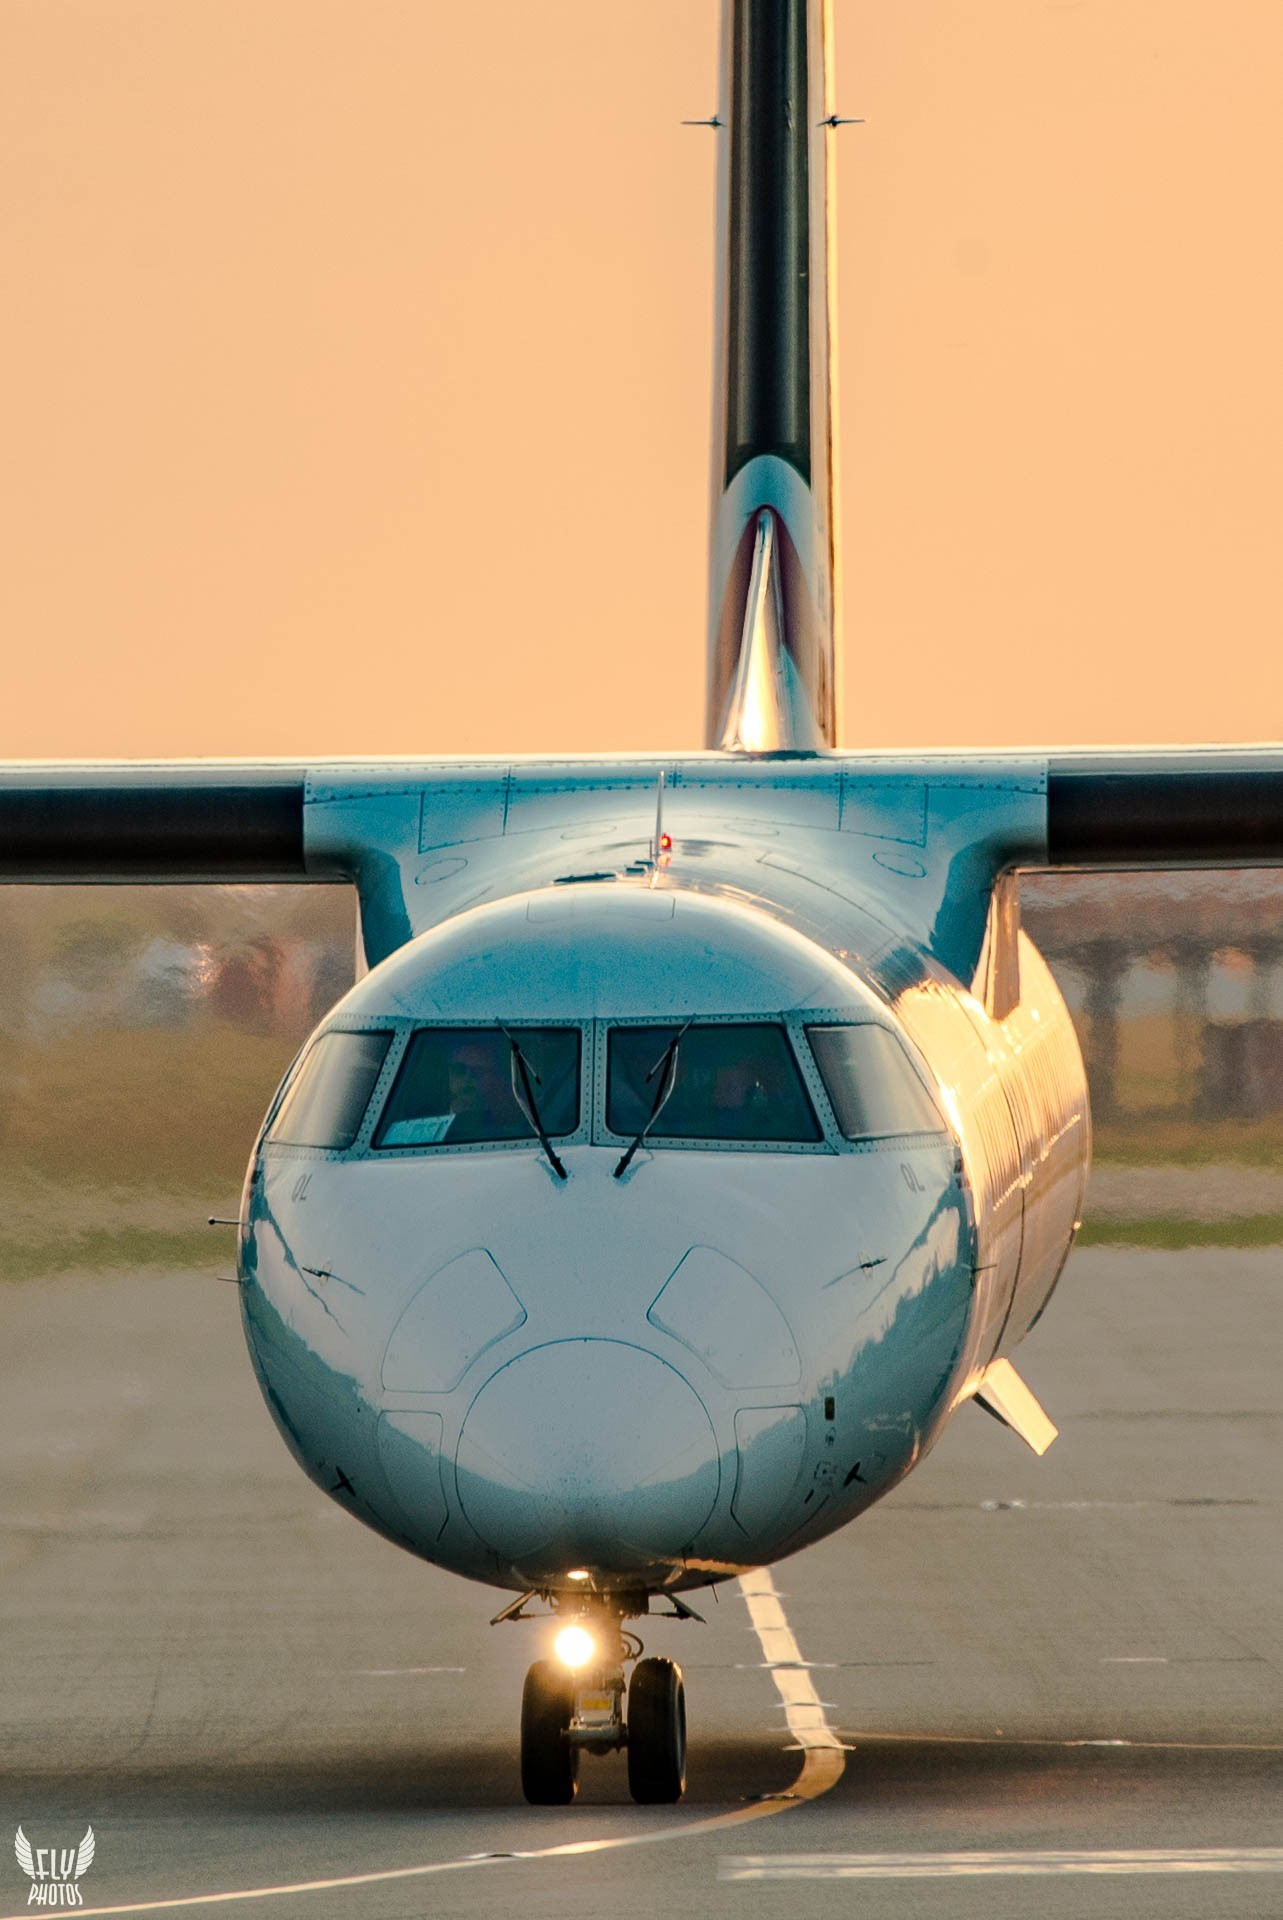 Photo of the day: One legged plane